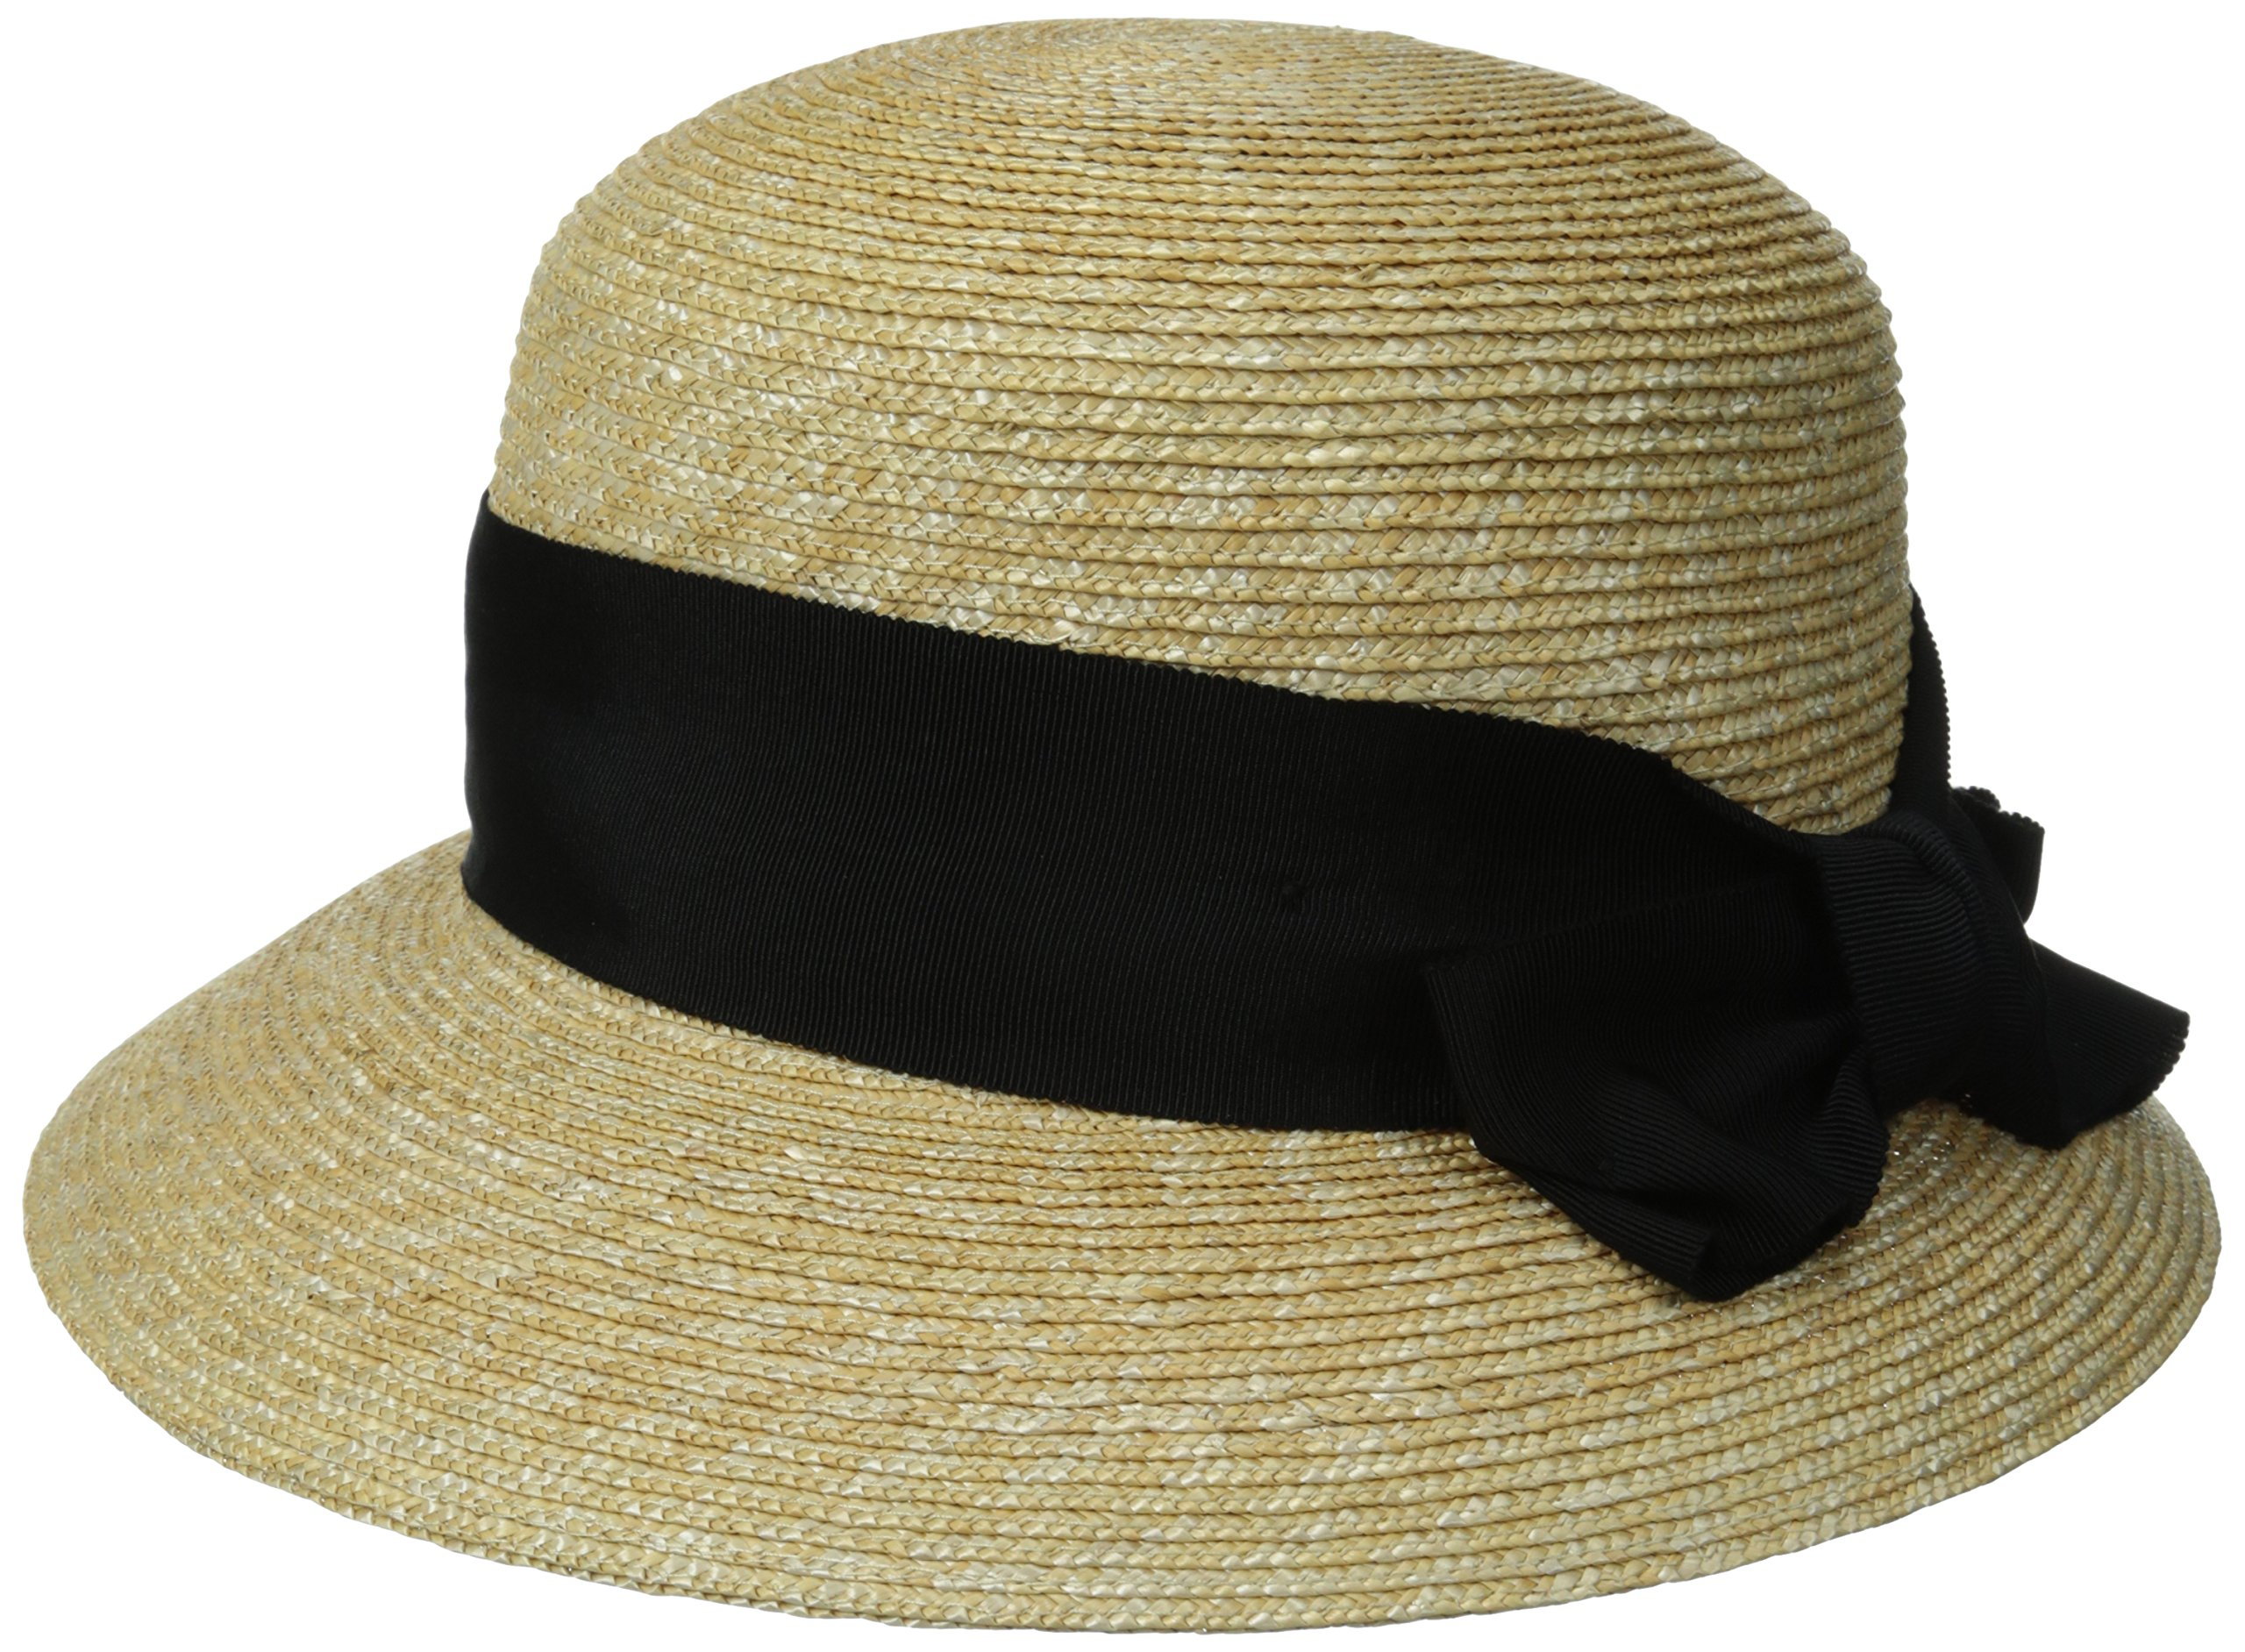 Gottex Women's Darby Fine Milan Straw Packable Sun Hat, Rated UPF 50+ For Max Sun Protection, Natural/Black, One Size